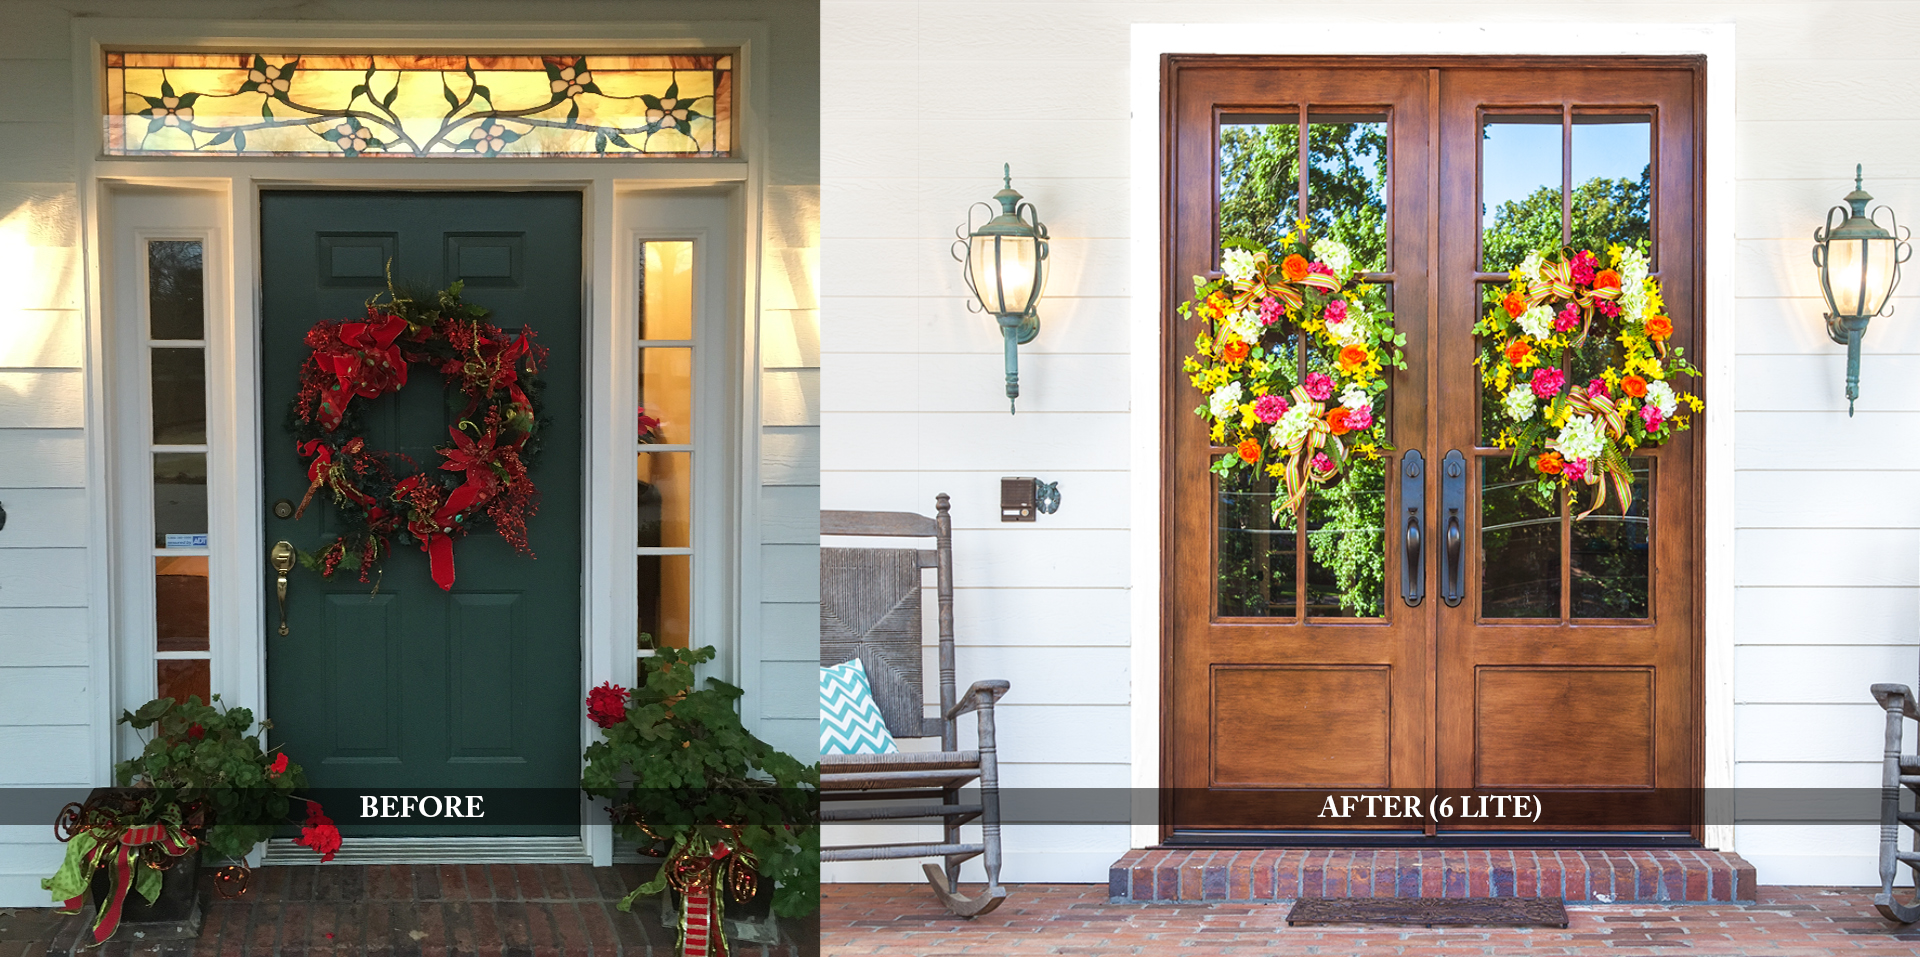 Famhouse residential entry doors before and after comparison